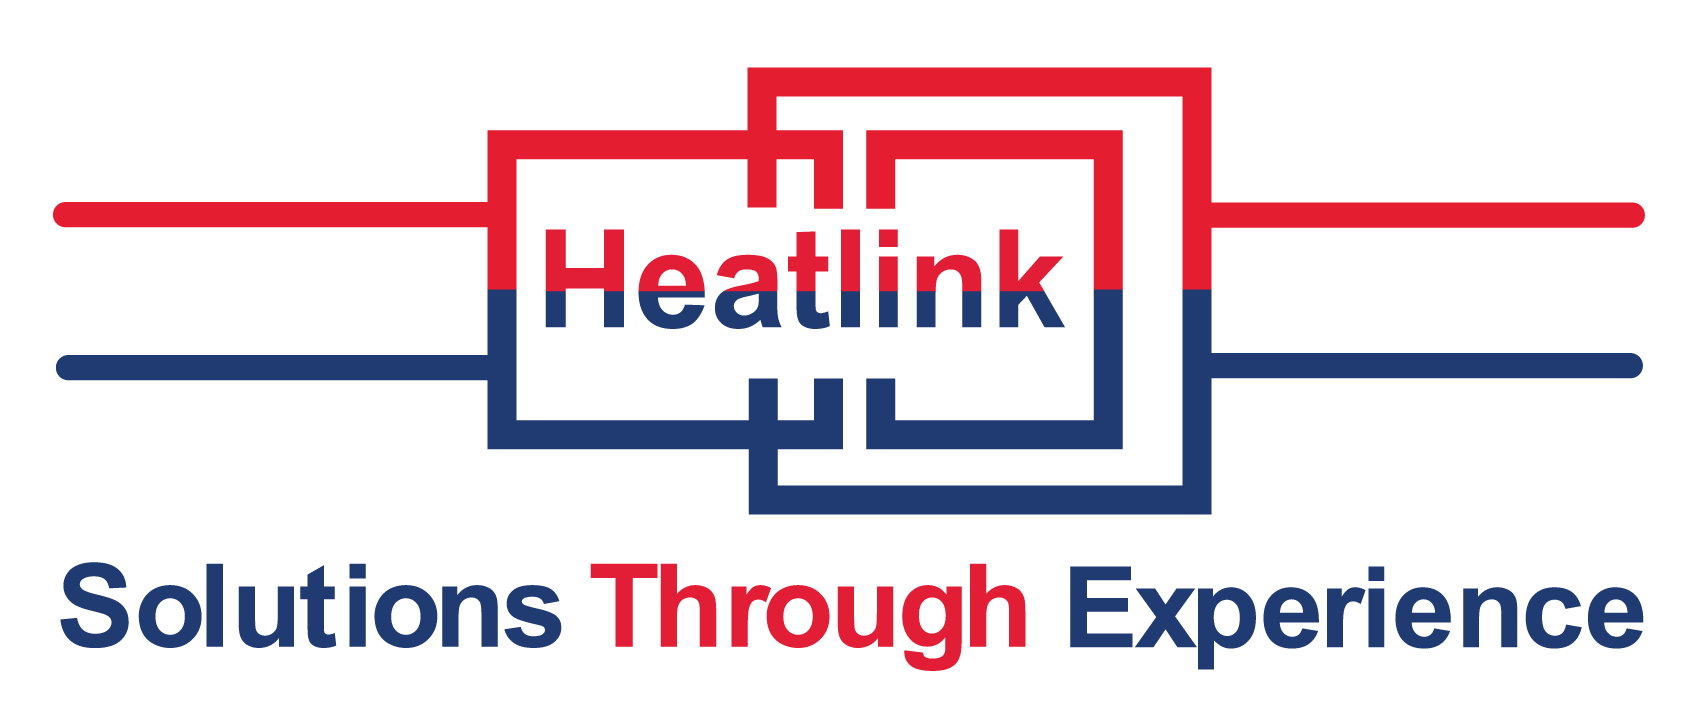 HEATLINK LOGO - Heat Interface Units Manchester